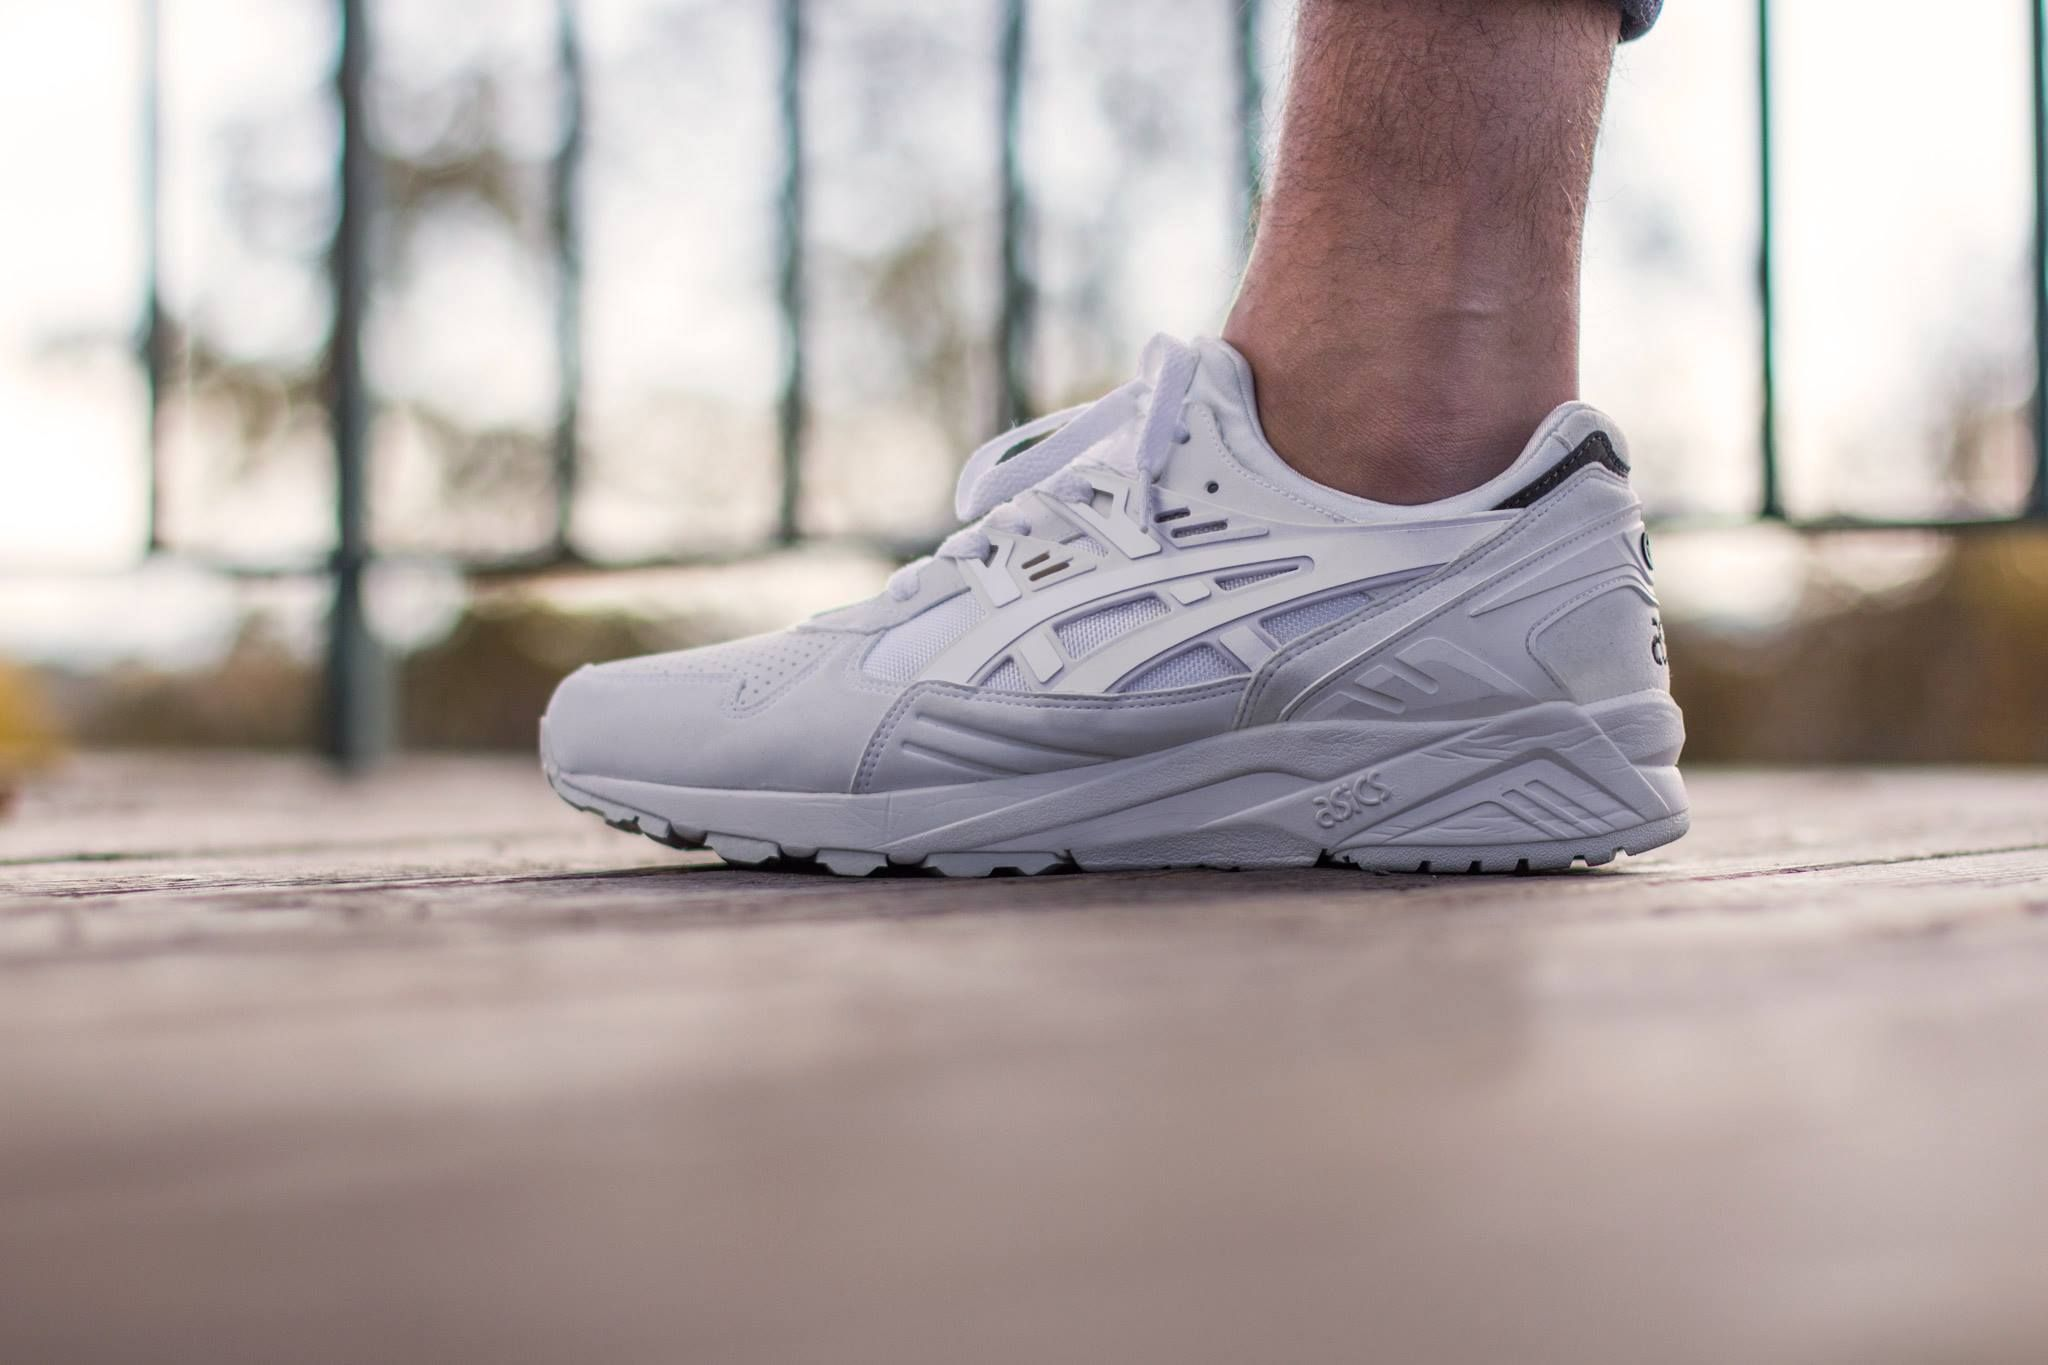 An All White Asics Gel Kayano Trainer for Spring 2015